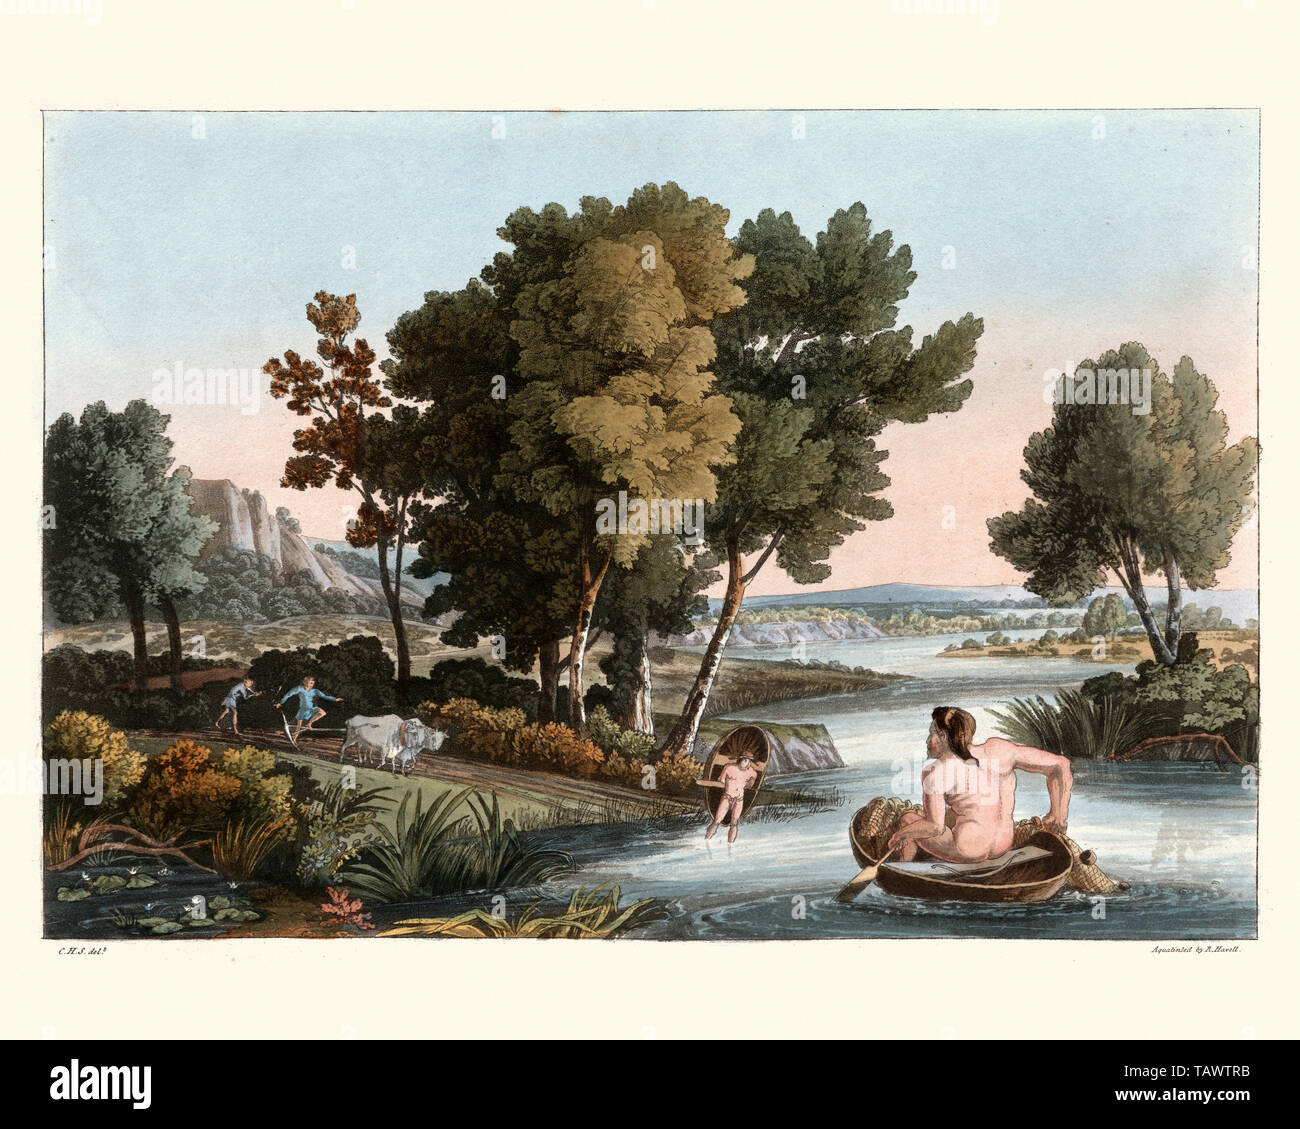 Ancient British fishing and Husbandry, farmers ploughing a field and man fishing using a coracle boat. 1815, The Costume of the Original Inhabitants o - Stock Image